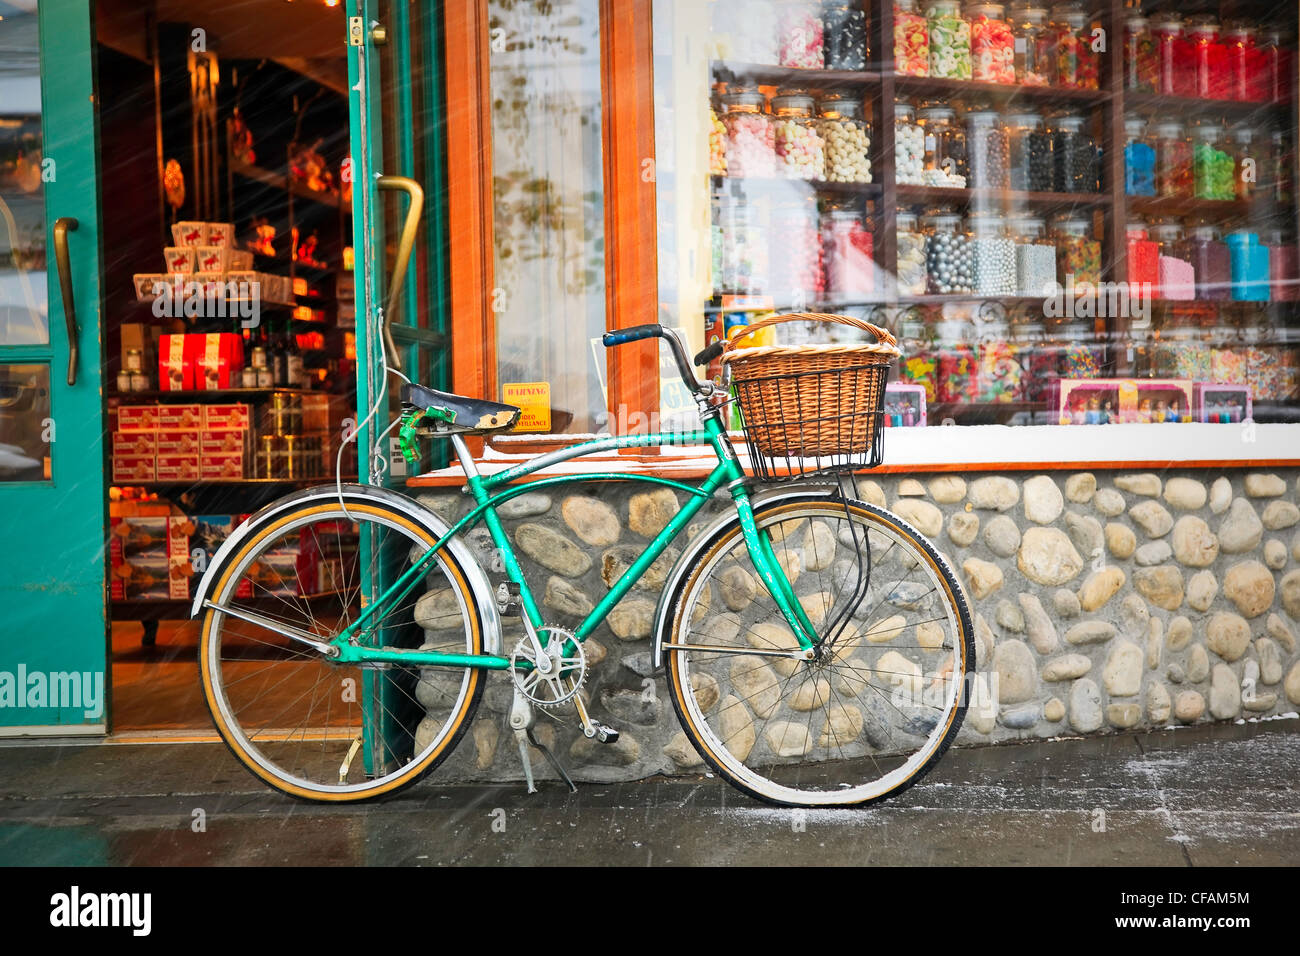 Cruiser bicycle with basket parked outside a Candy Store during a snowfall. Banff, Alberta, Canada. - Stock Image